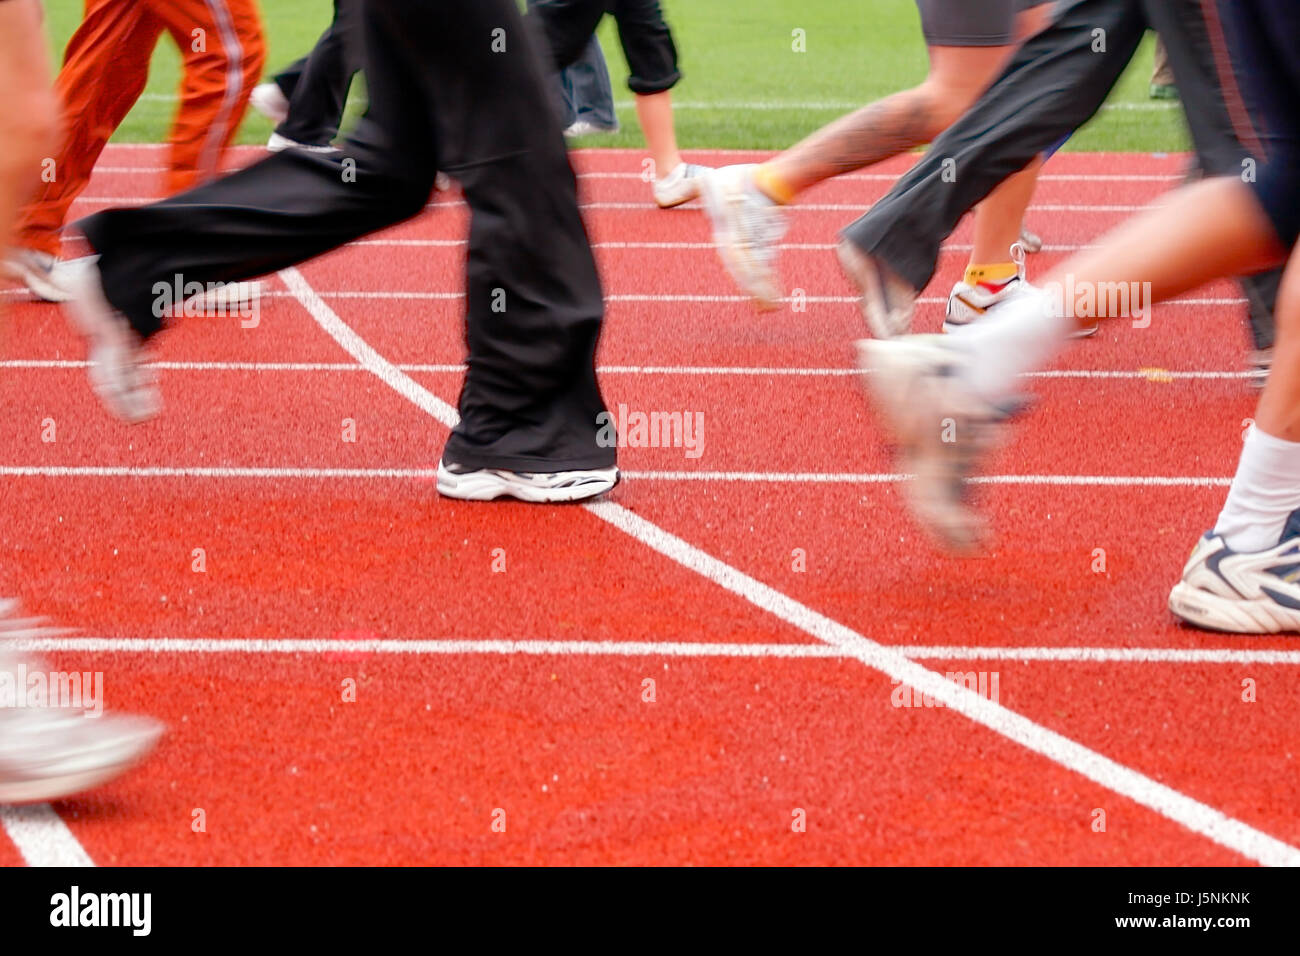 track stadium contest rotor training sneakers leg bolt train foot race career Stock Photo